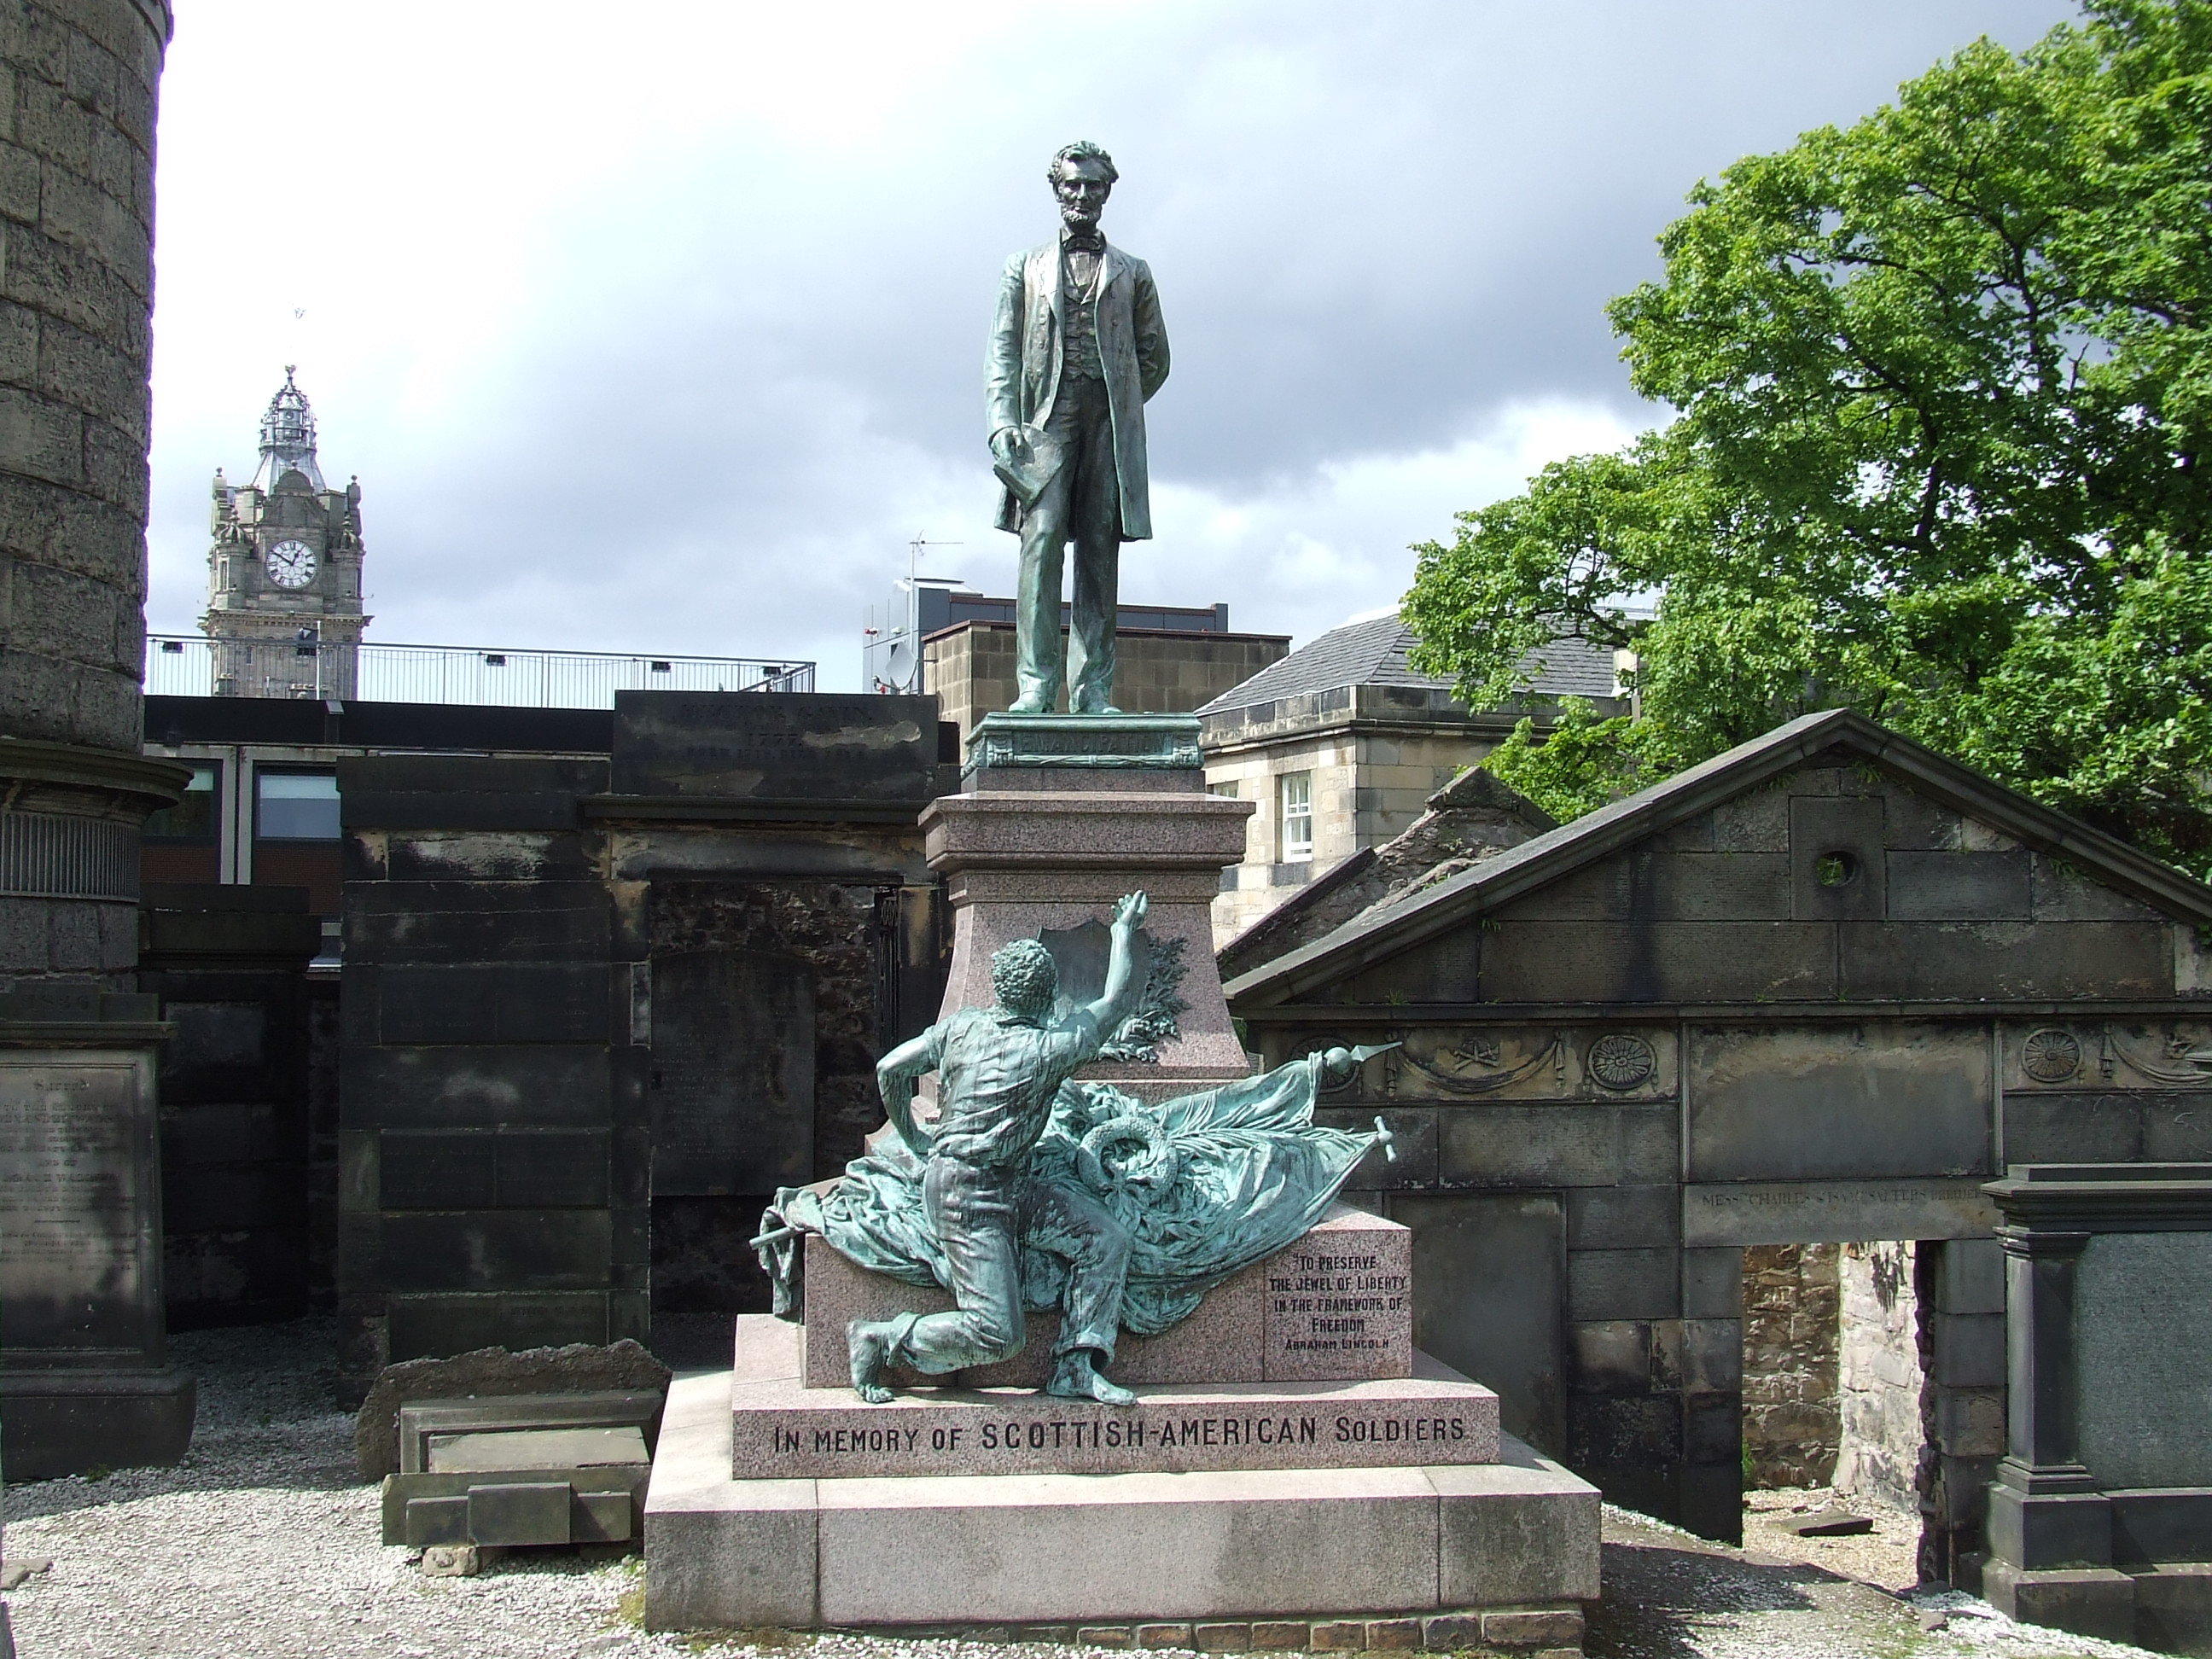 The American Civil War Memorial in Old Calton Cemetery, Edinburgh